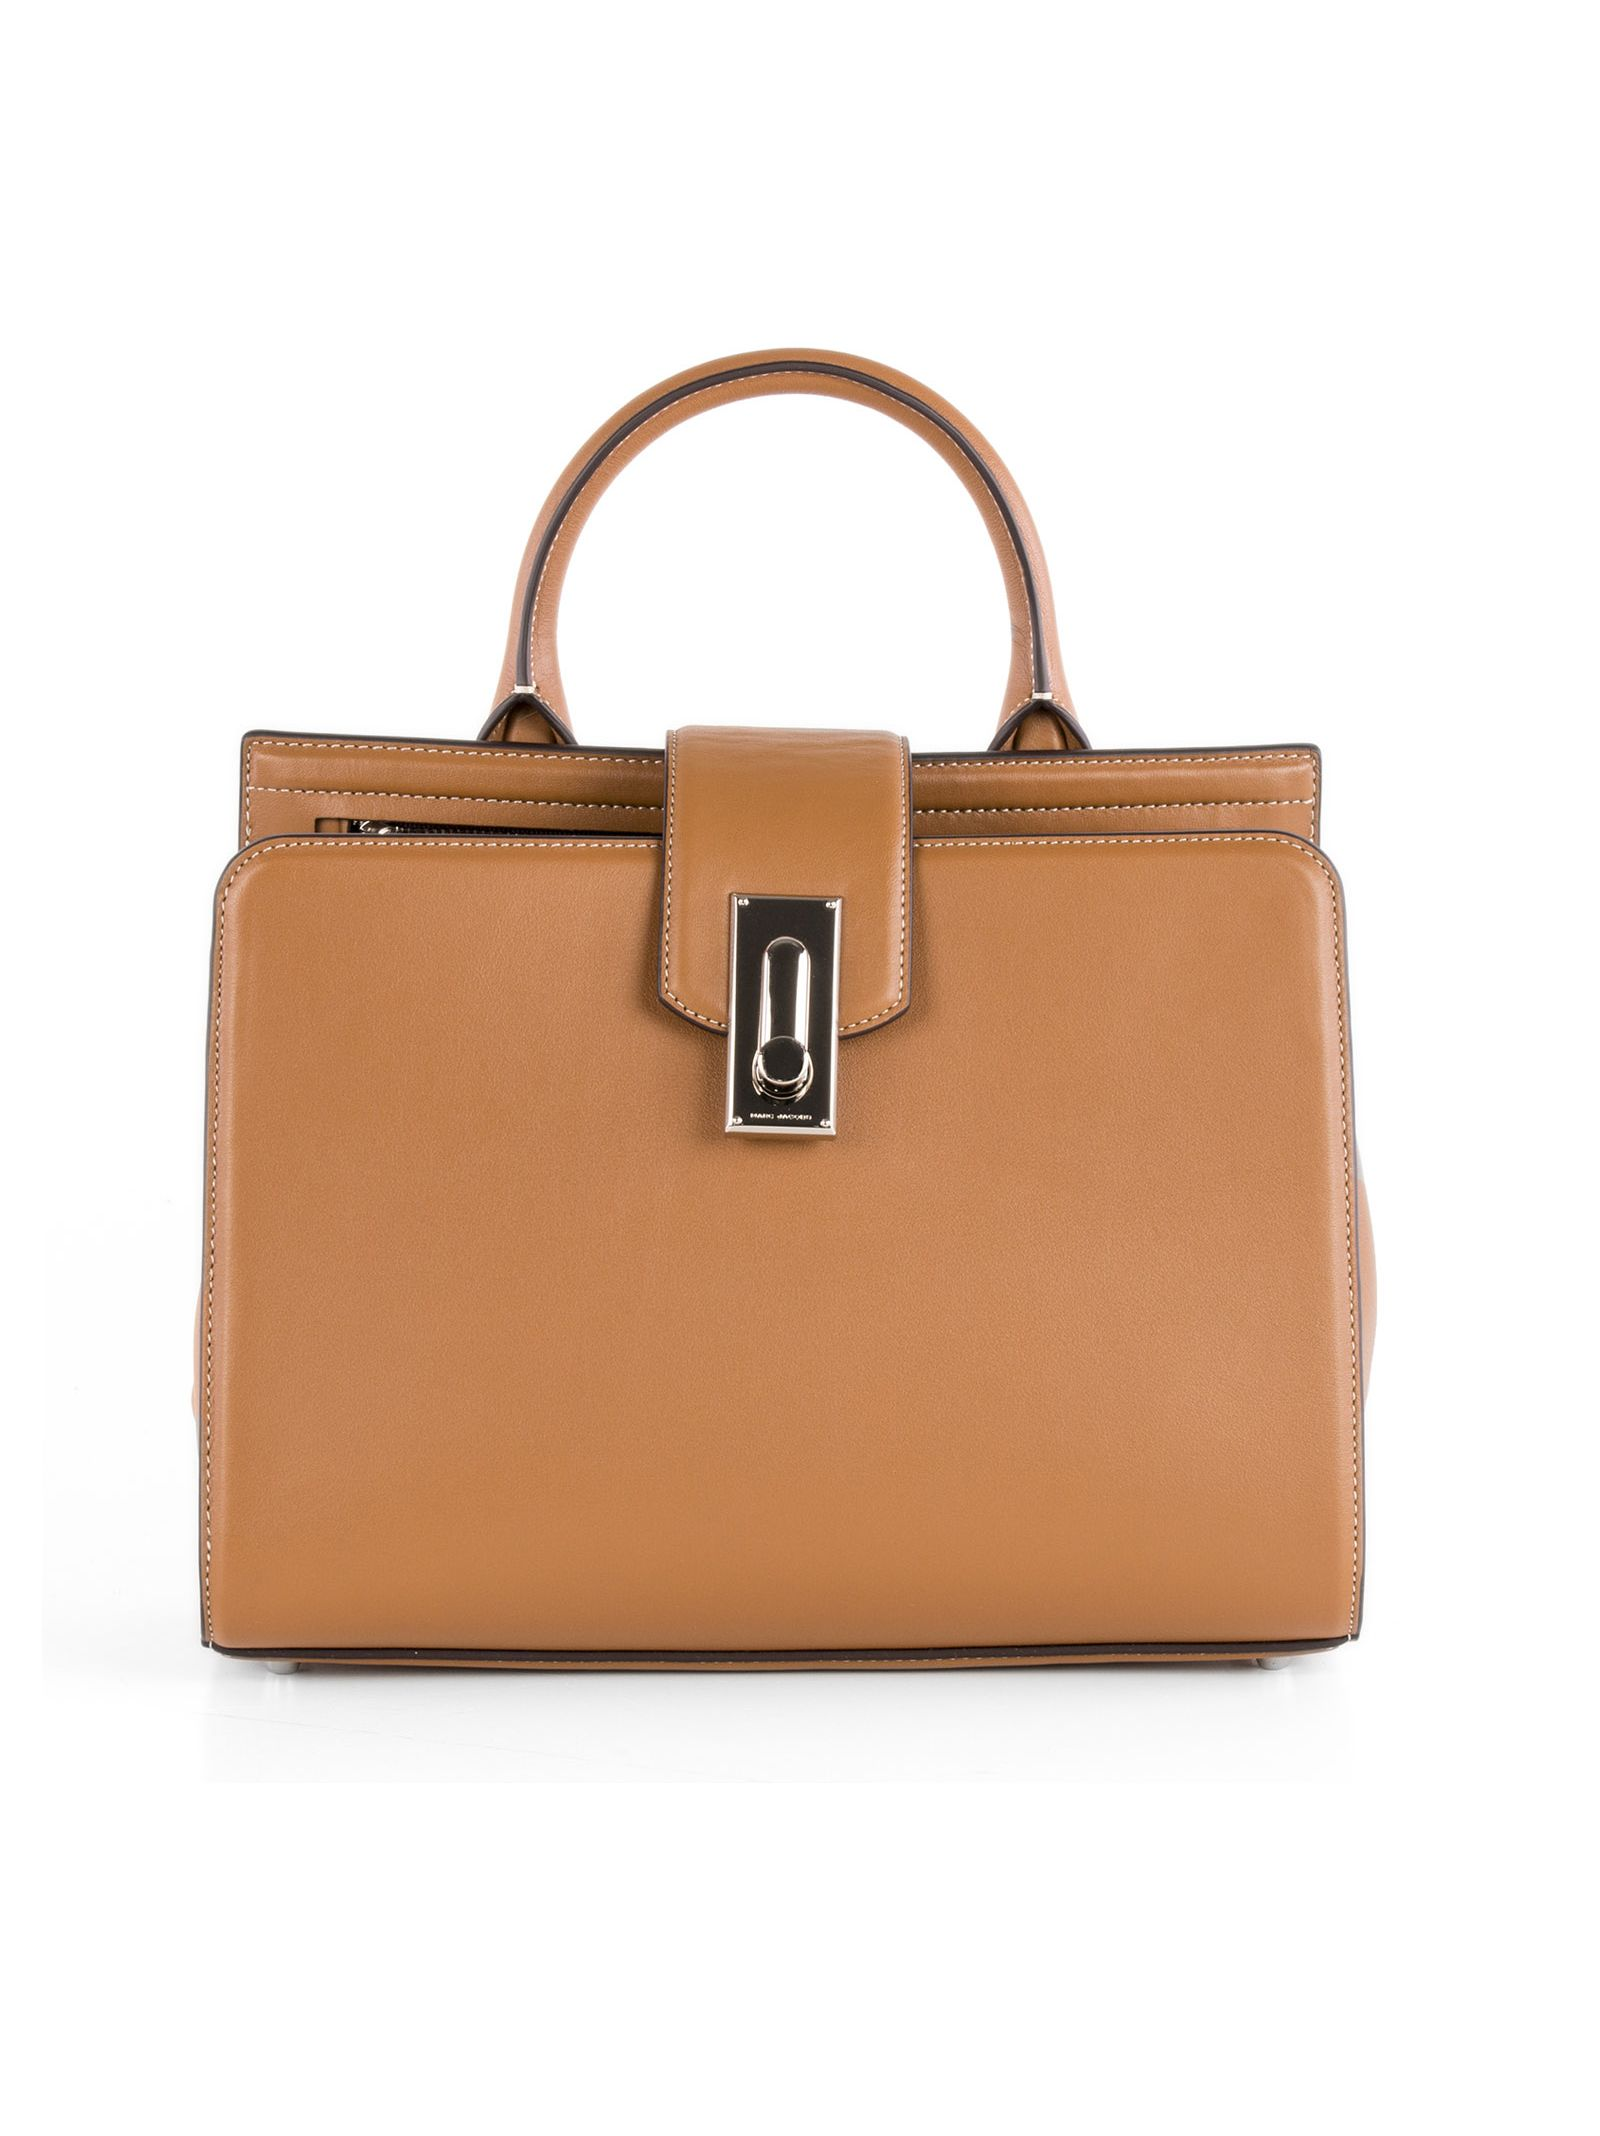 marc jacobs female marc jacobs brown leather handle bag